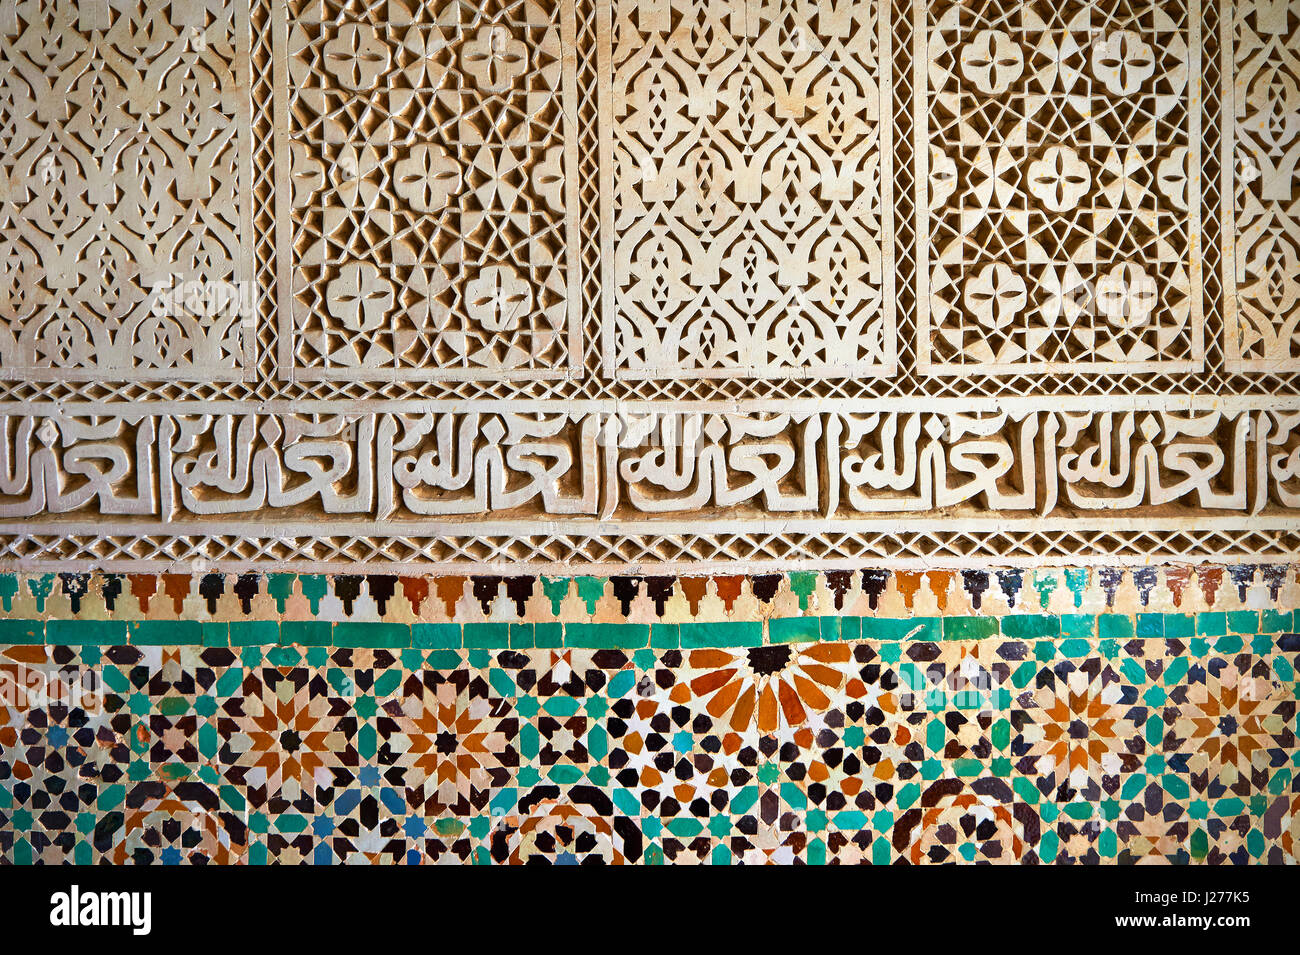 Berber Mocarabe Honeycomb work plaster decorations and Berber design tiles of the Mauseleum of Moulay Ismaïl - Stock Image